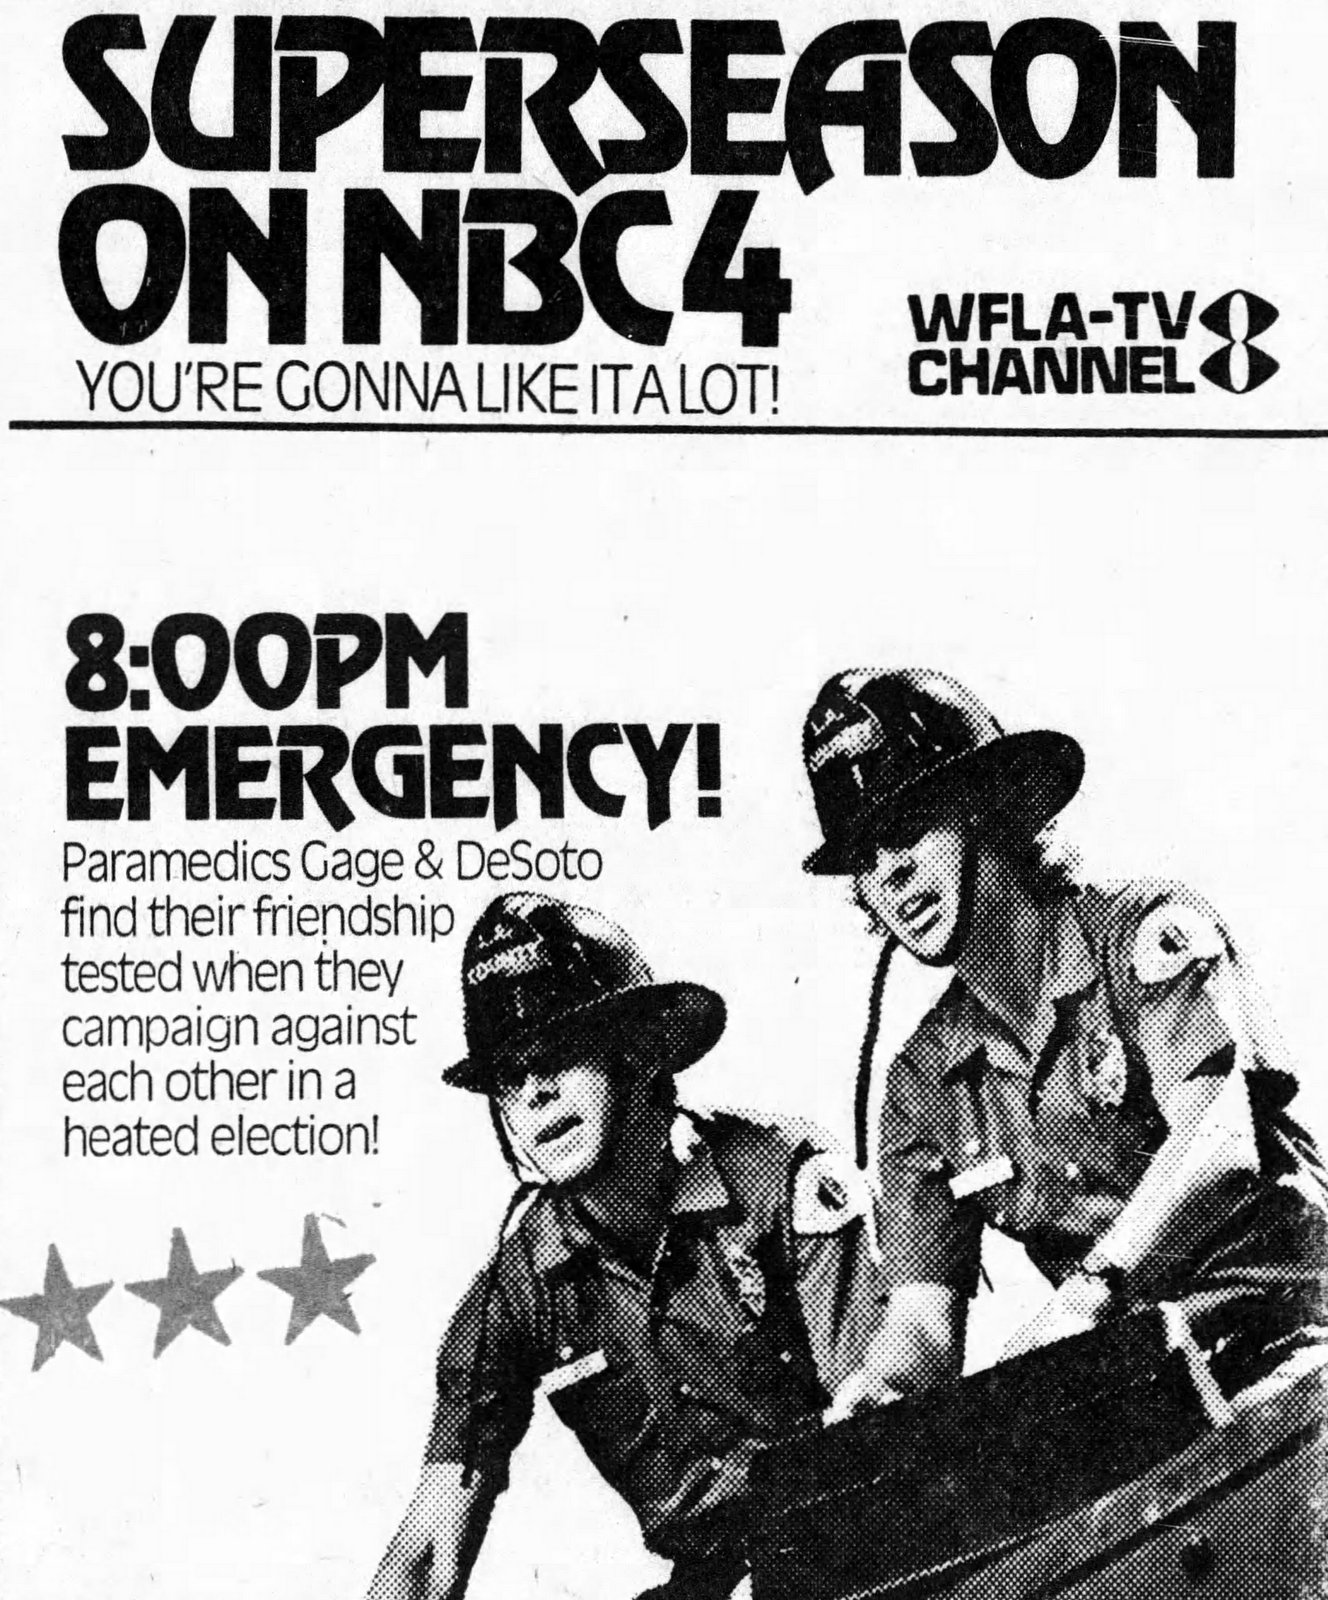 Emergency! TV show ad from 1975